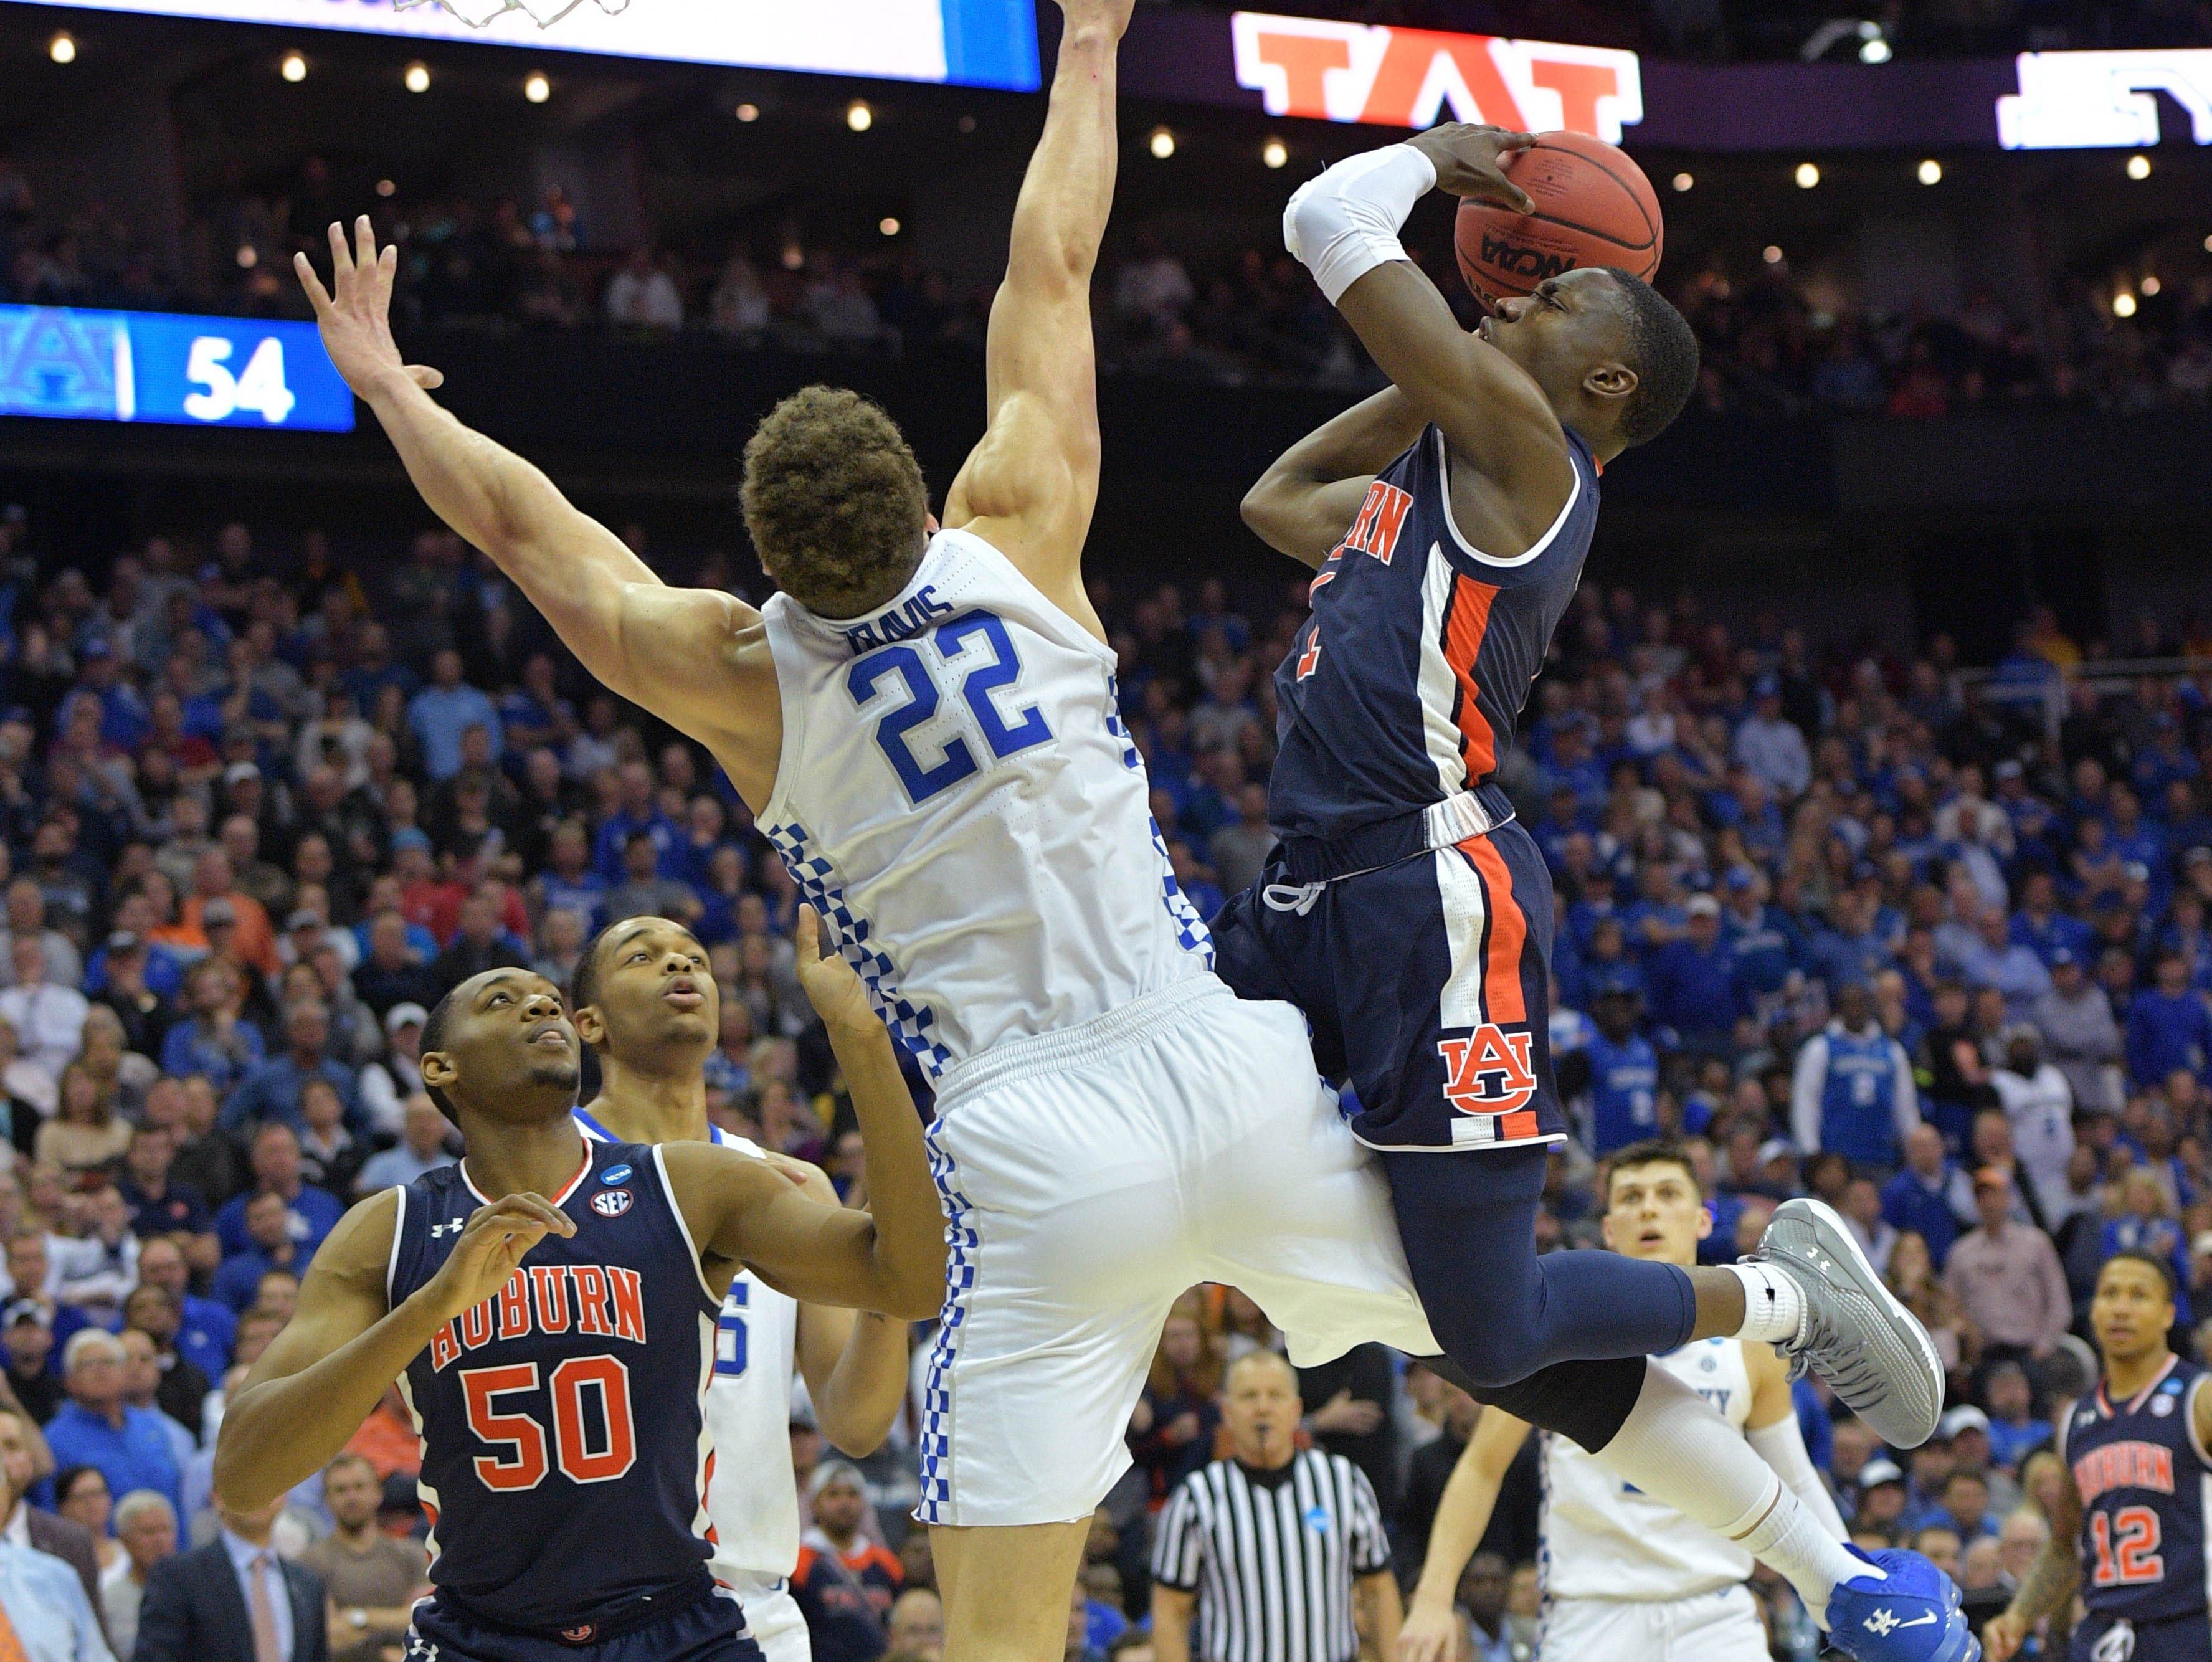 Mar 31, 2019; Kansas City, MO, United States; Auburn Tigers guard Jared Harper (1) shoots over Kentucky Wildcats forward Reid Travis (22) during the second half in the championship game of the midwest regional of the 2019 NCAA Tournament at Sprint Center. Mandatory Credit: Denny Medley-USA TODAY Sports